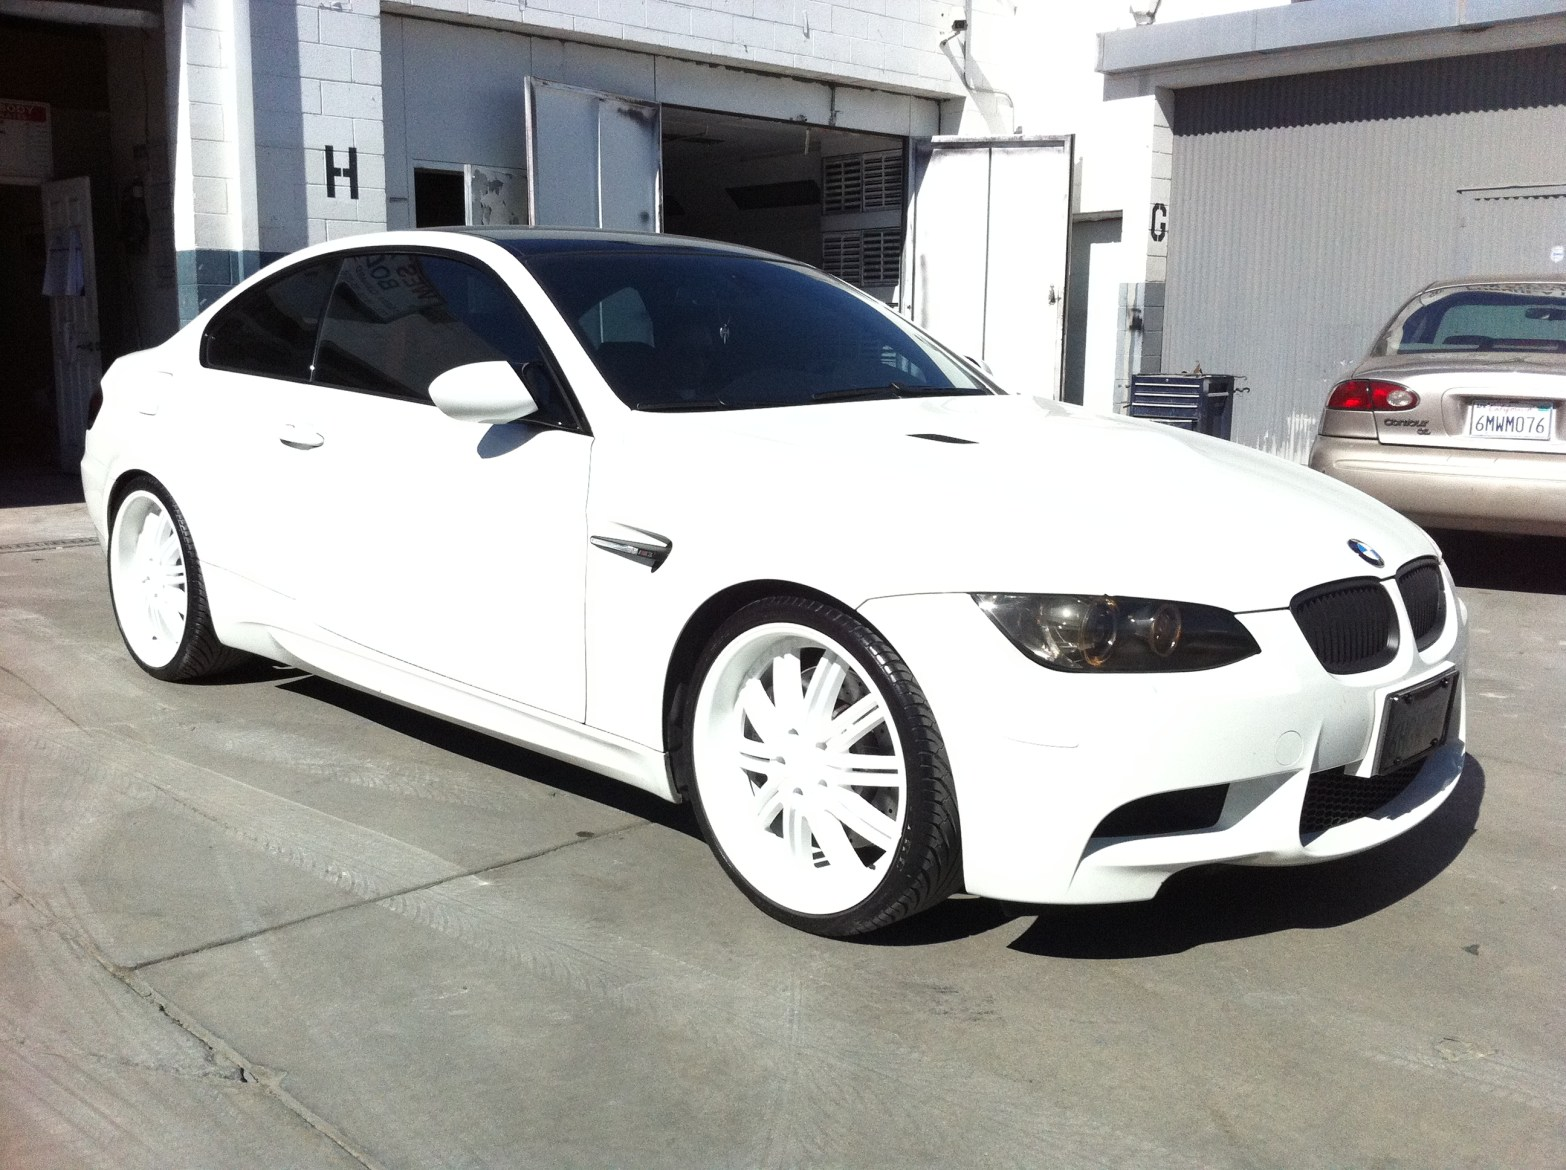 west-coast-body-and-paint-white-bmw-m3-4